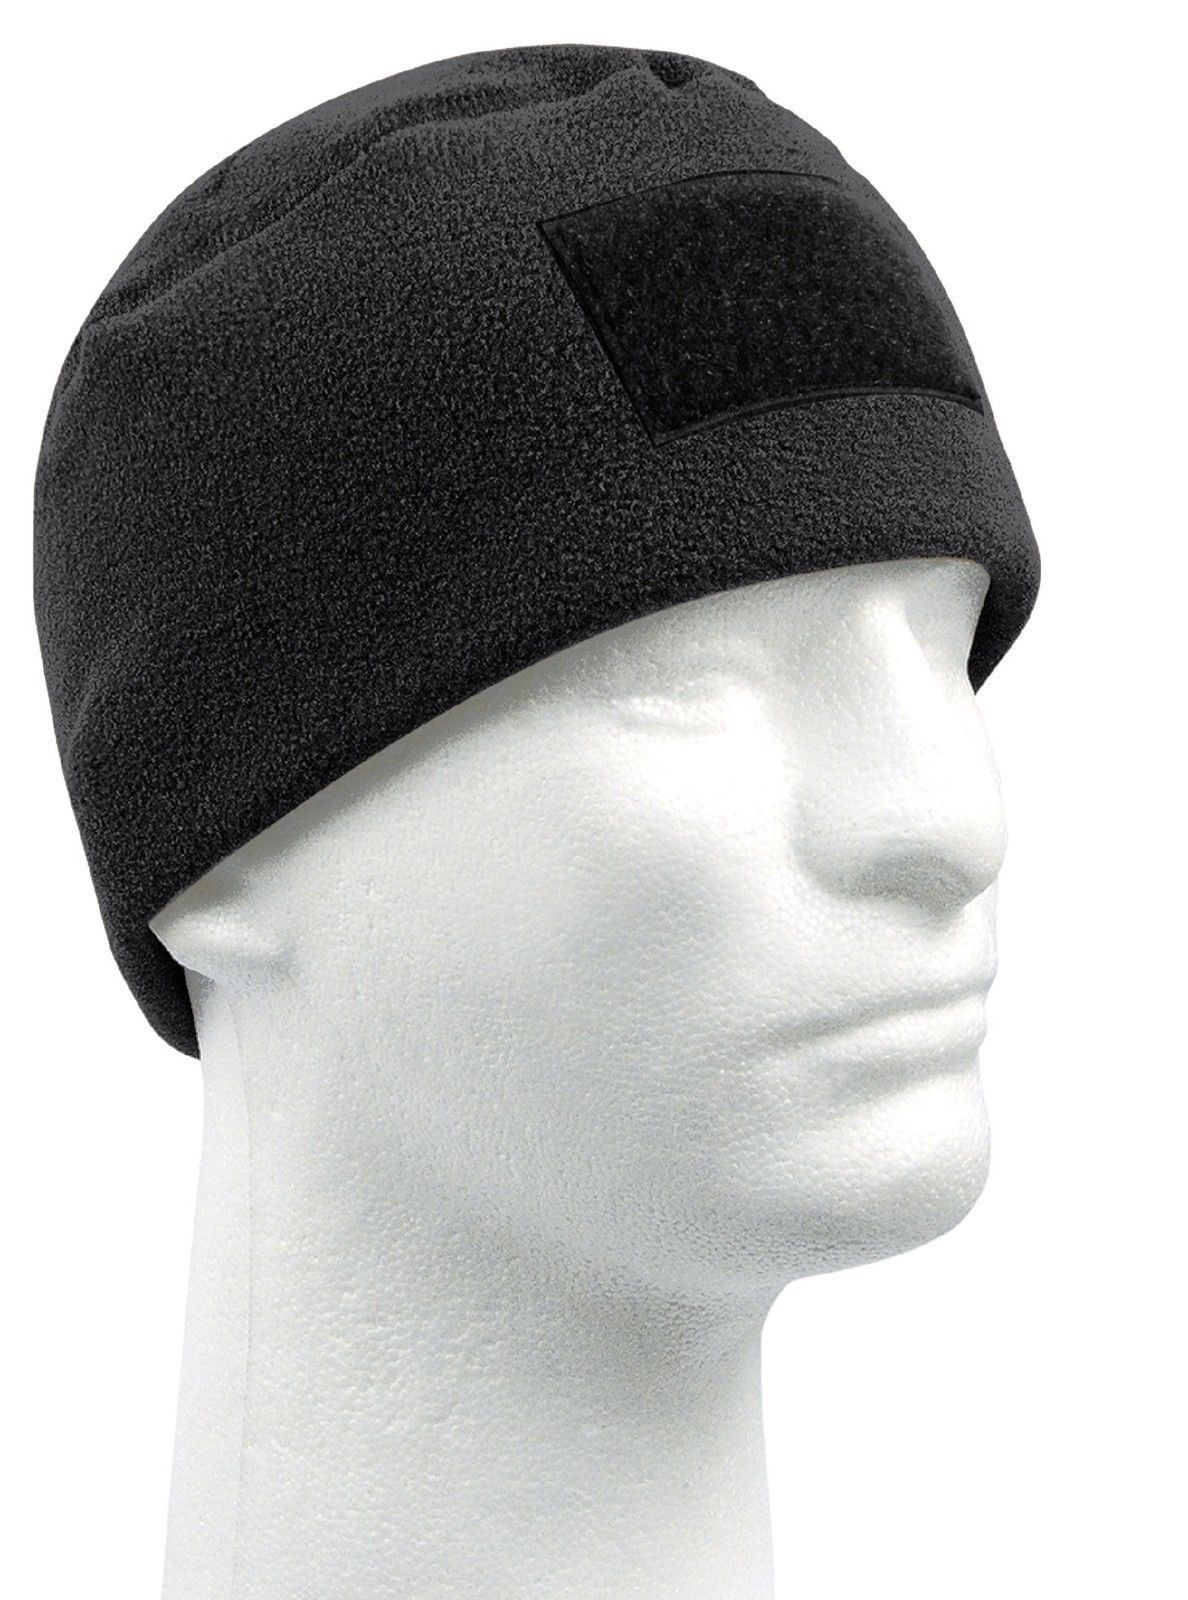 Winter Tactical Polar Fleece Watch Cap Ski Hat w  Front Patch Area Rothco  8760 34f6d50aa04